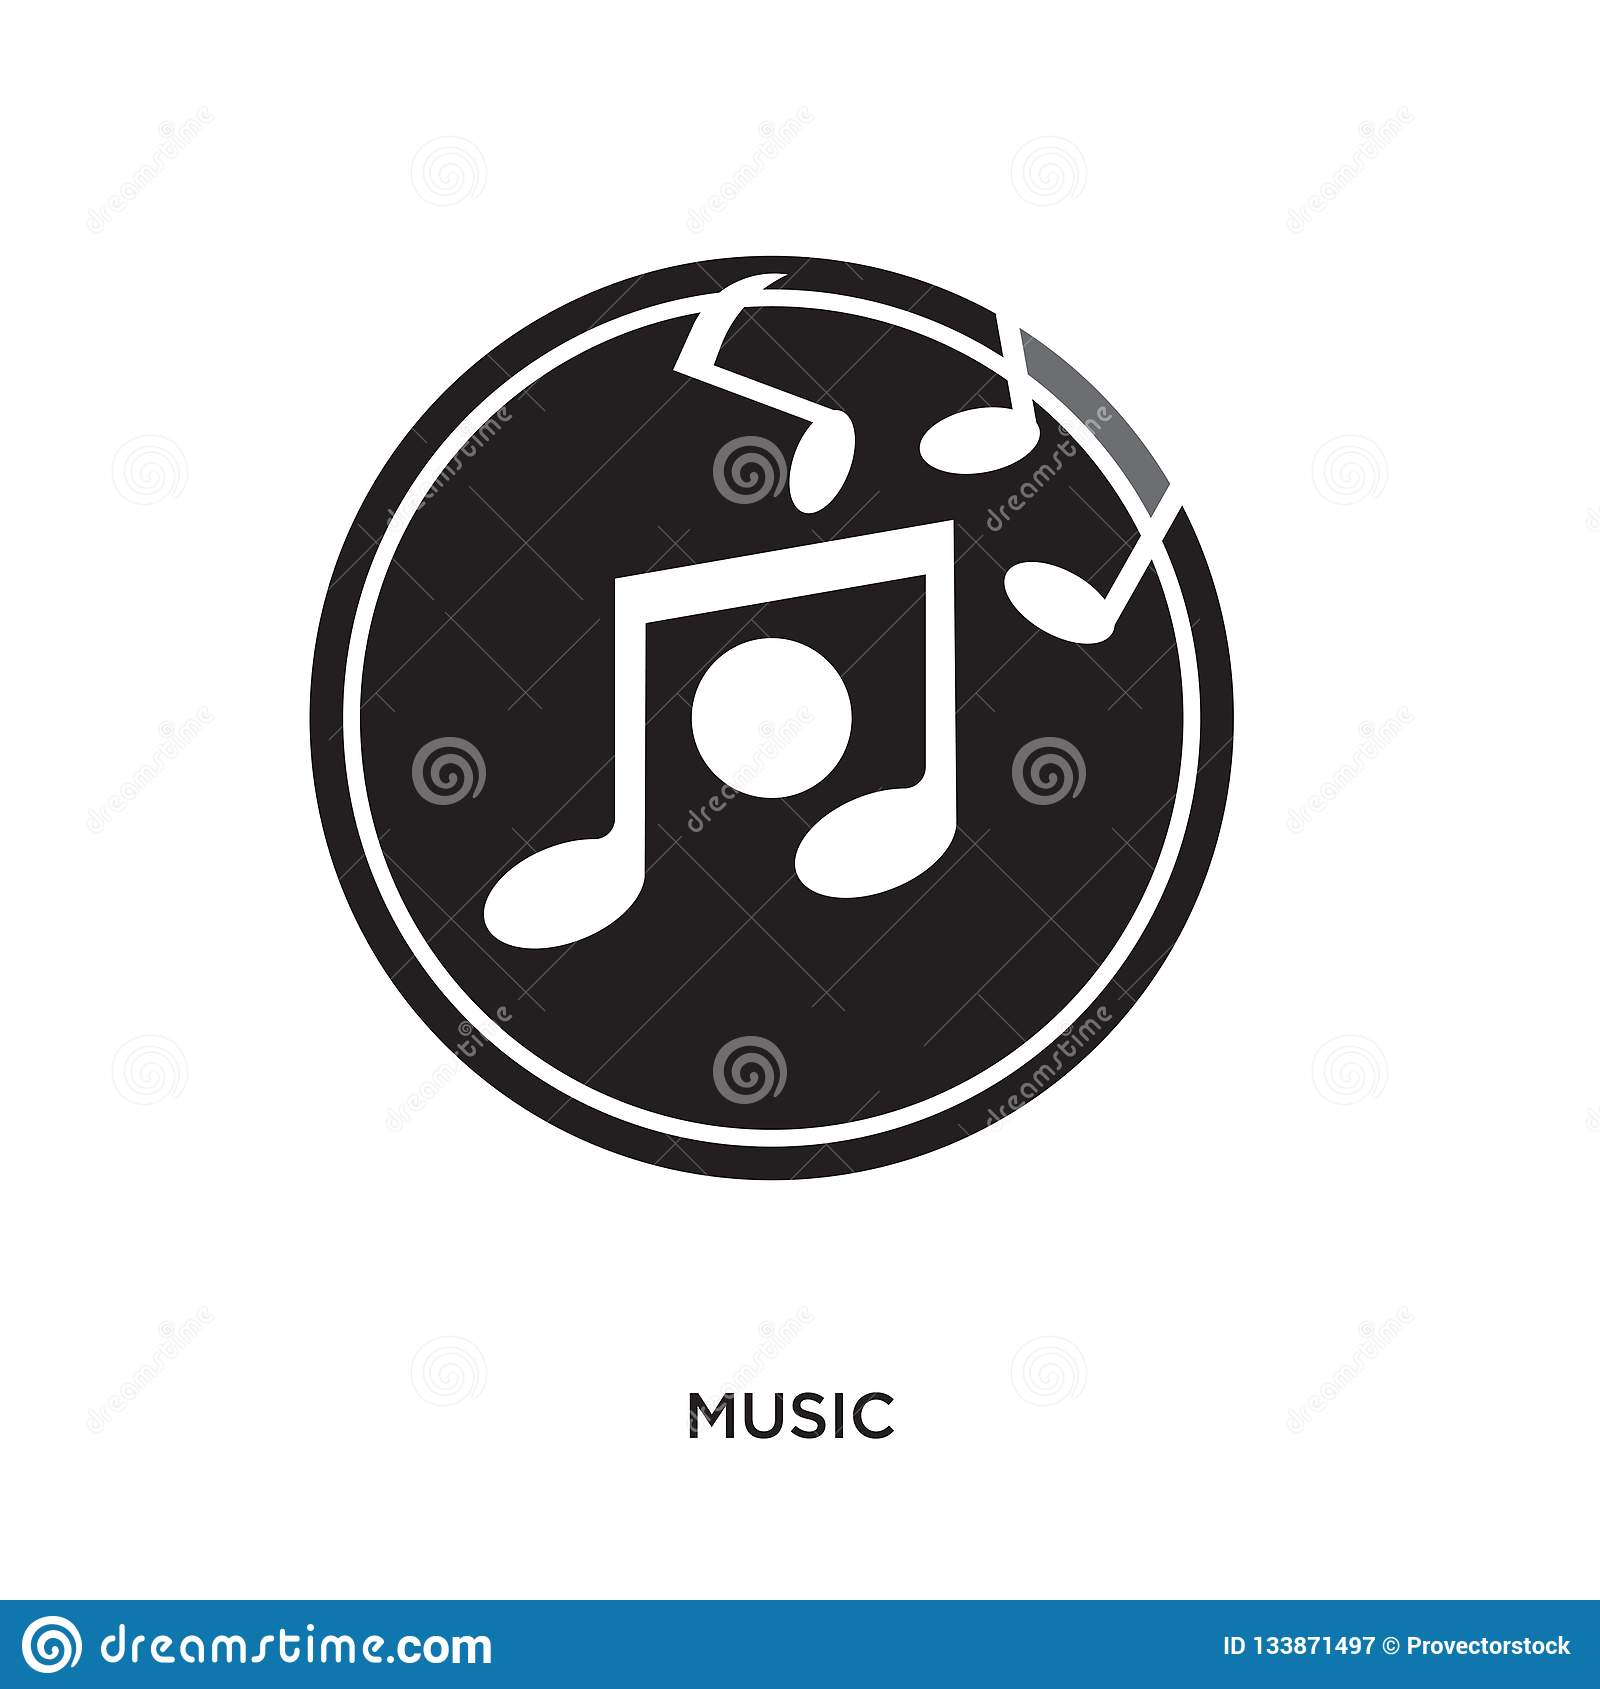 Music Logo Png Stock Vector Illustration Of Illustration 133871497